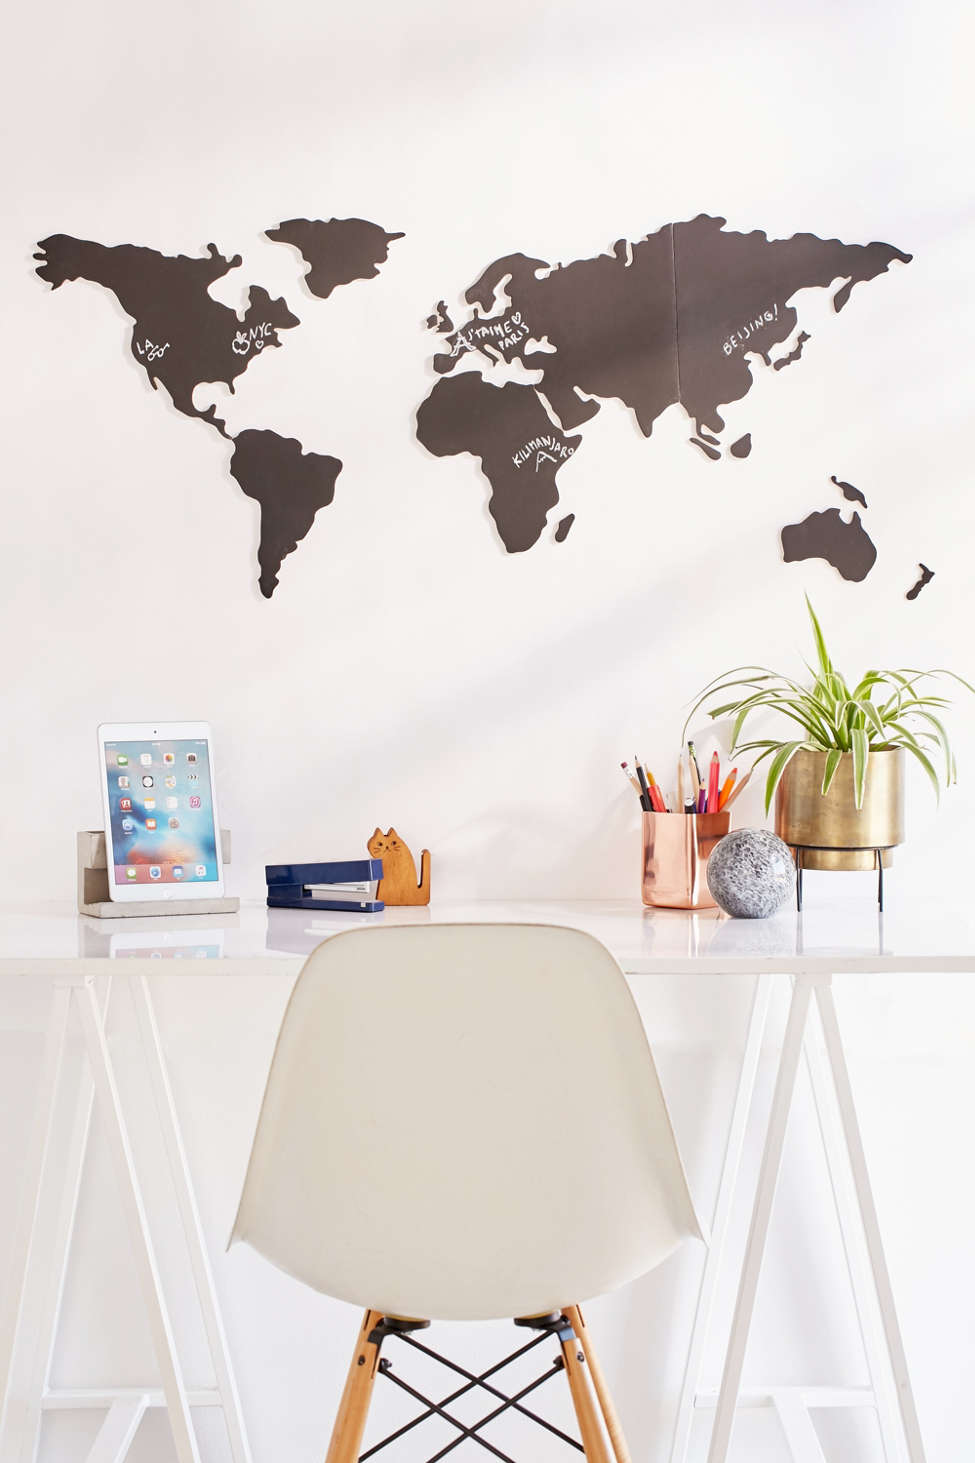 world map chalkboard write-on wall decal set | urban outfitters canada